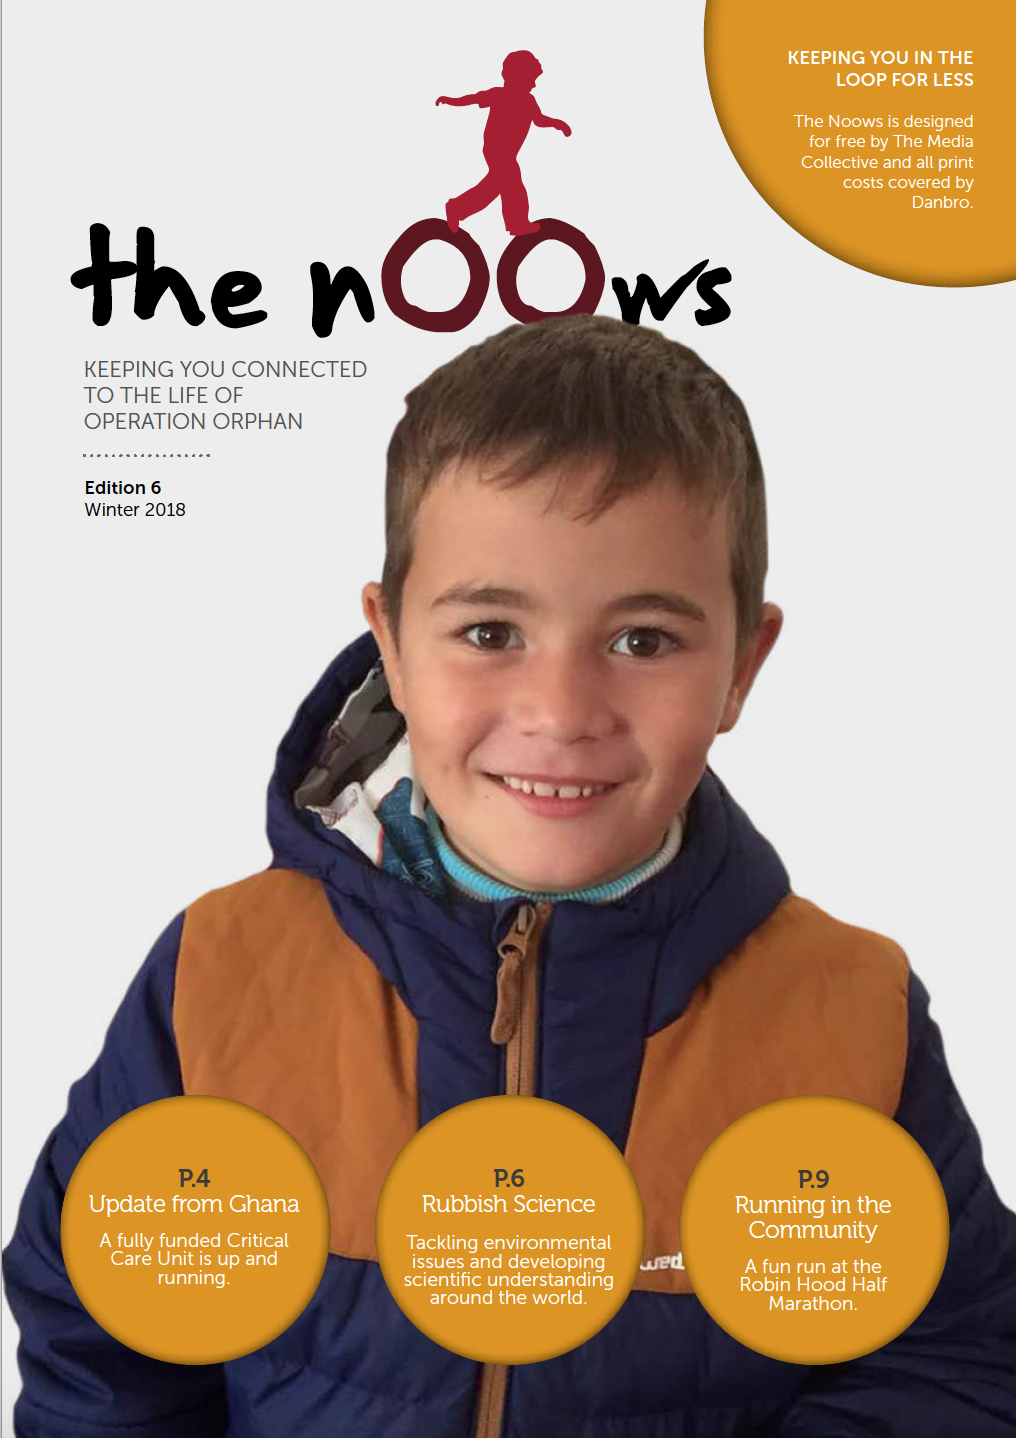 The Noows Edition 6